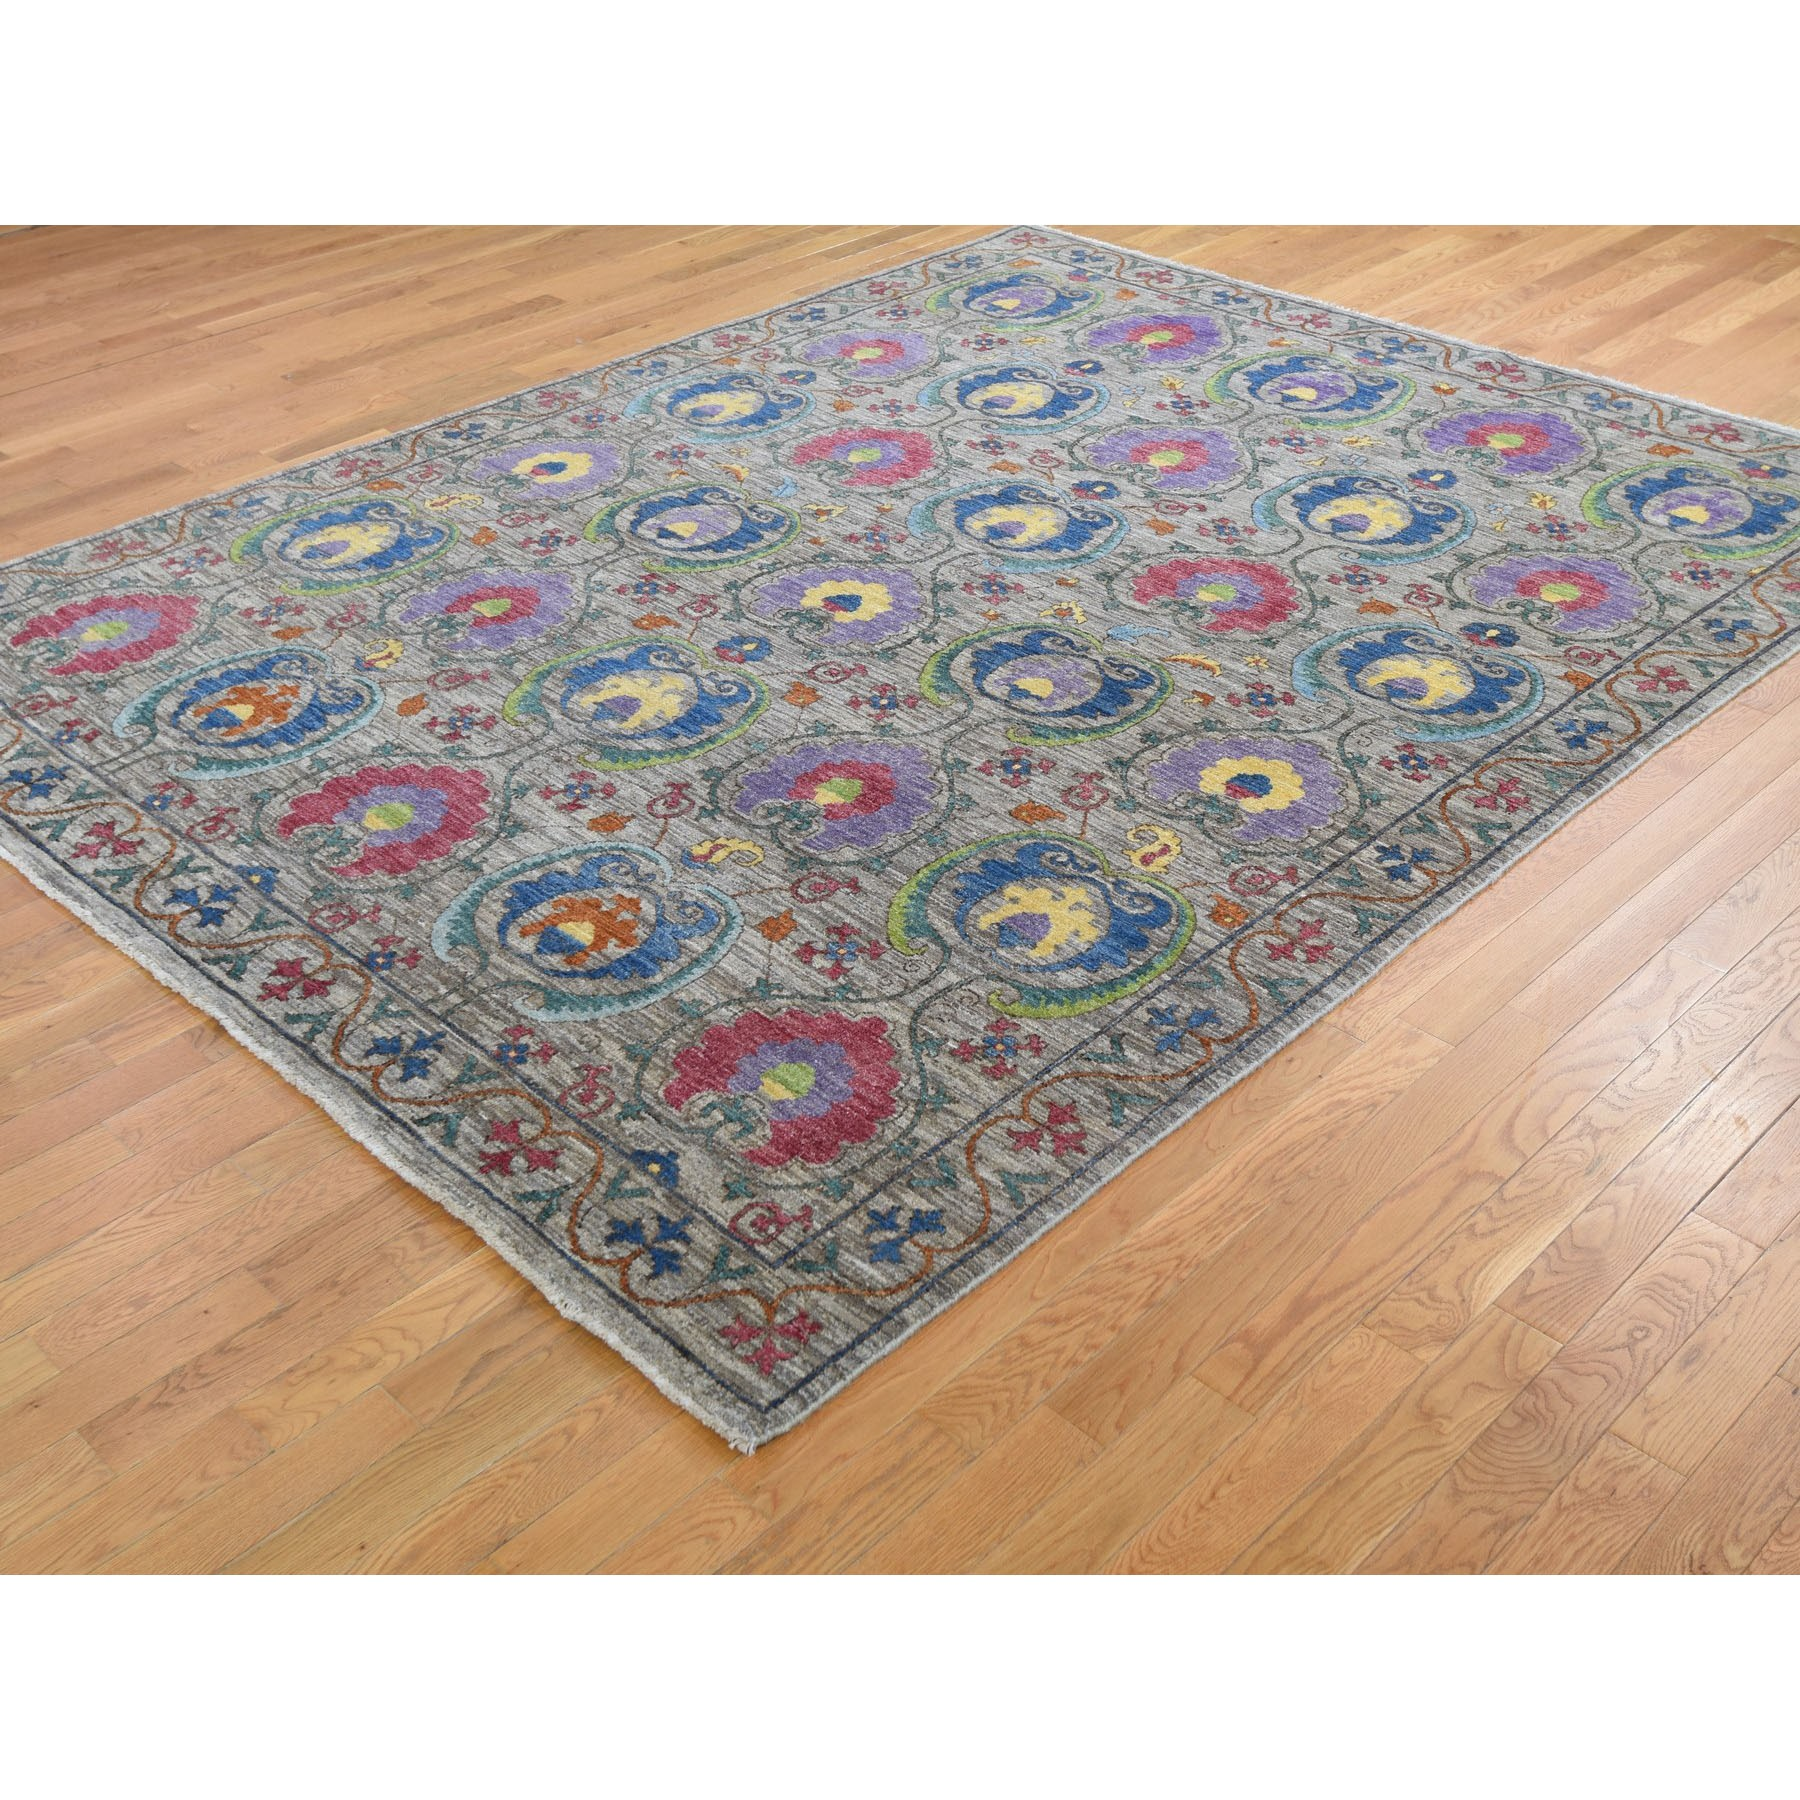 8-1 x10- Colorful Hand Knotted Peshawar Arts and Crafts Design Oriental Rug